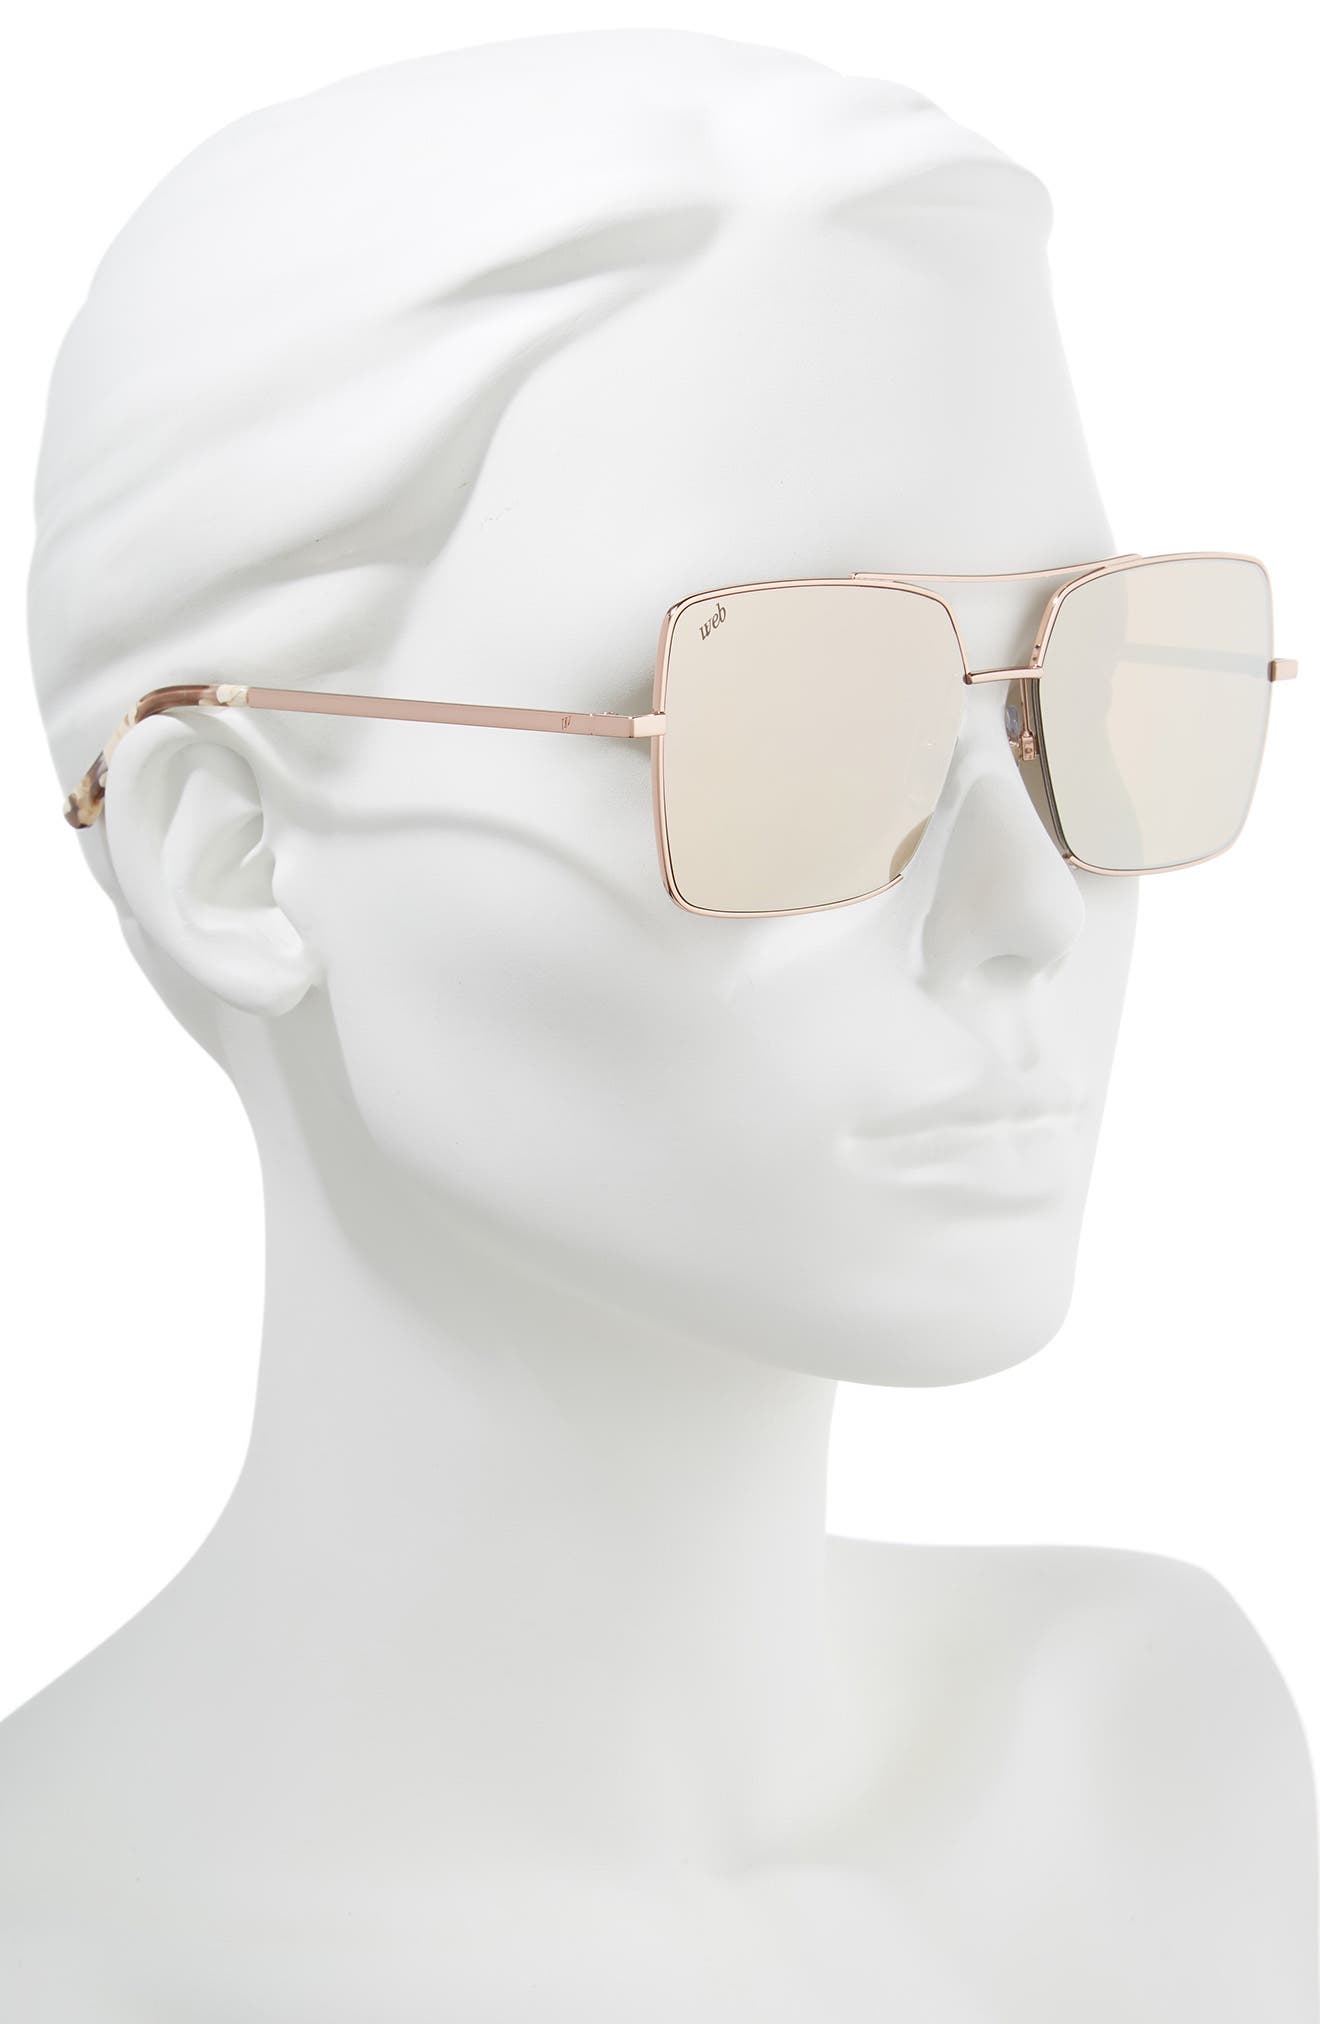 57mm Square Metal Aviator Sunglasses,                             Alternate thumbnail 2, color,                             Light Bronze/ Brown